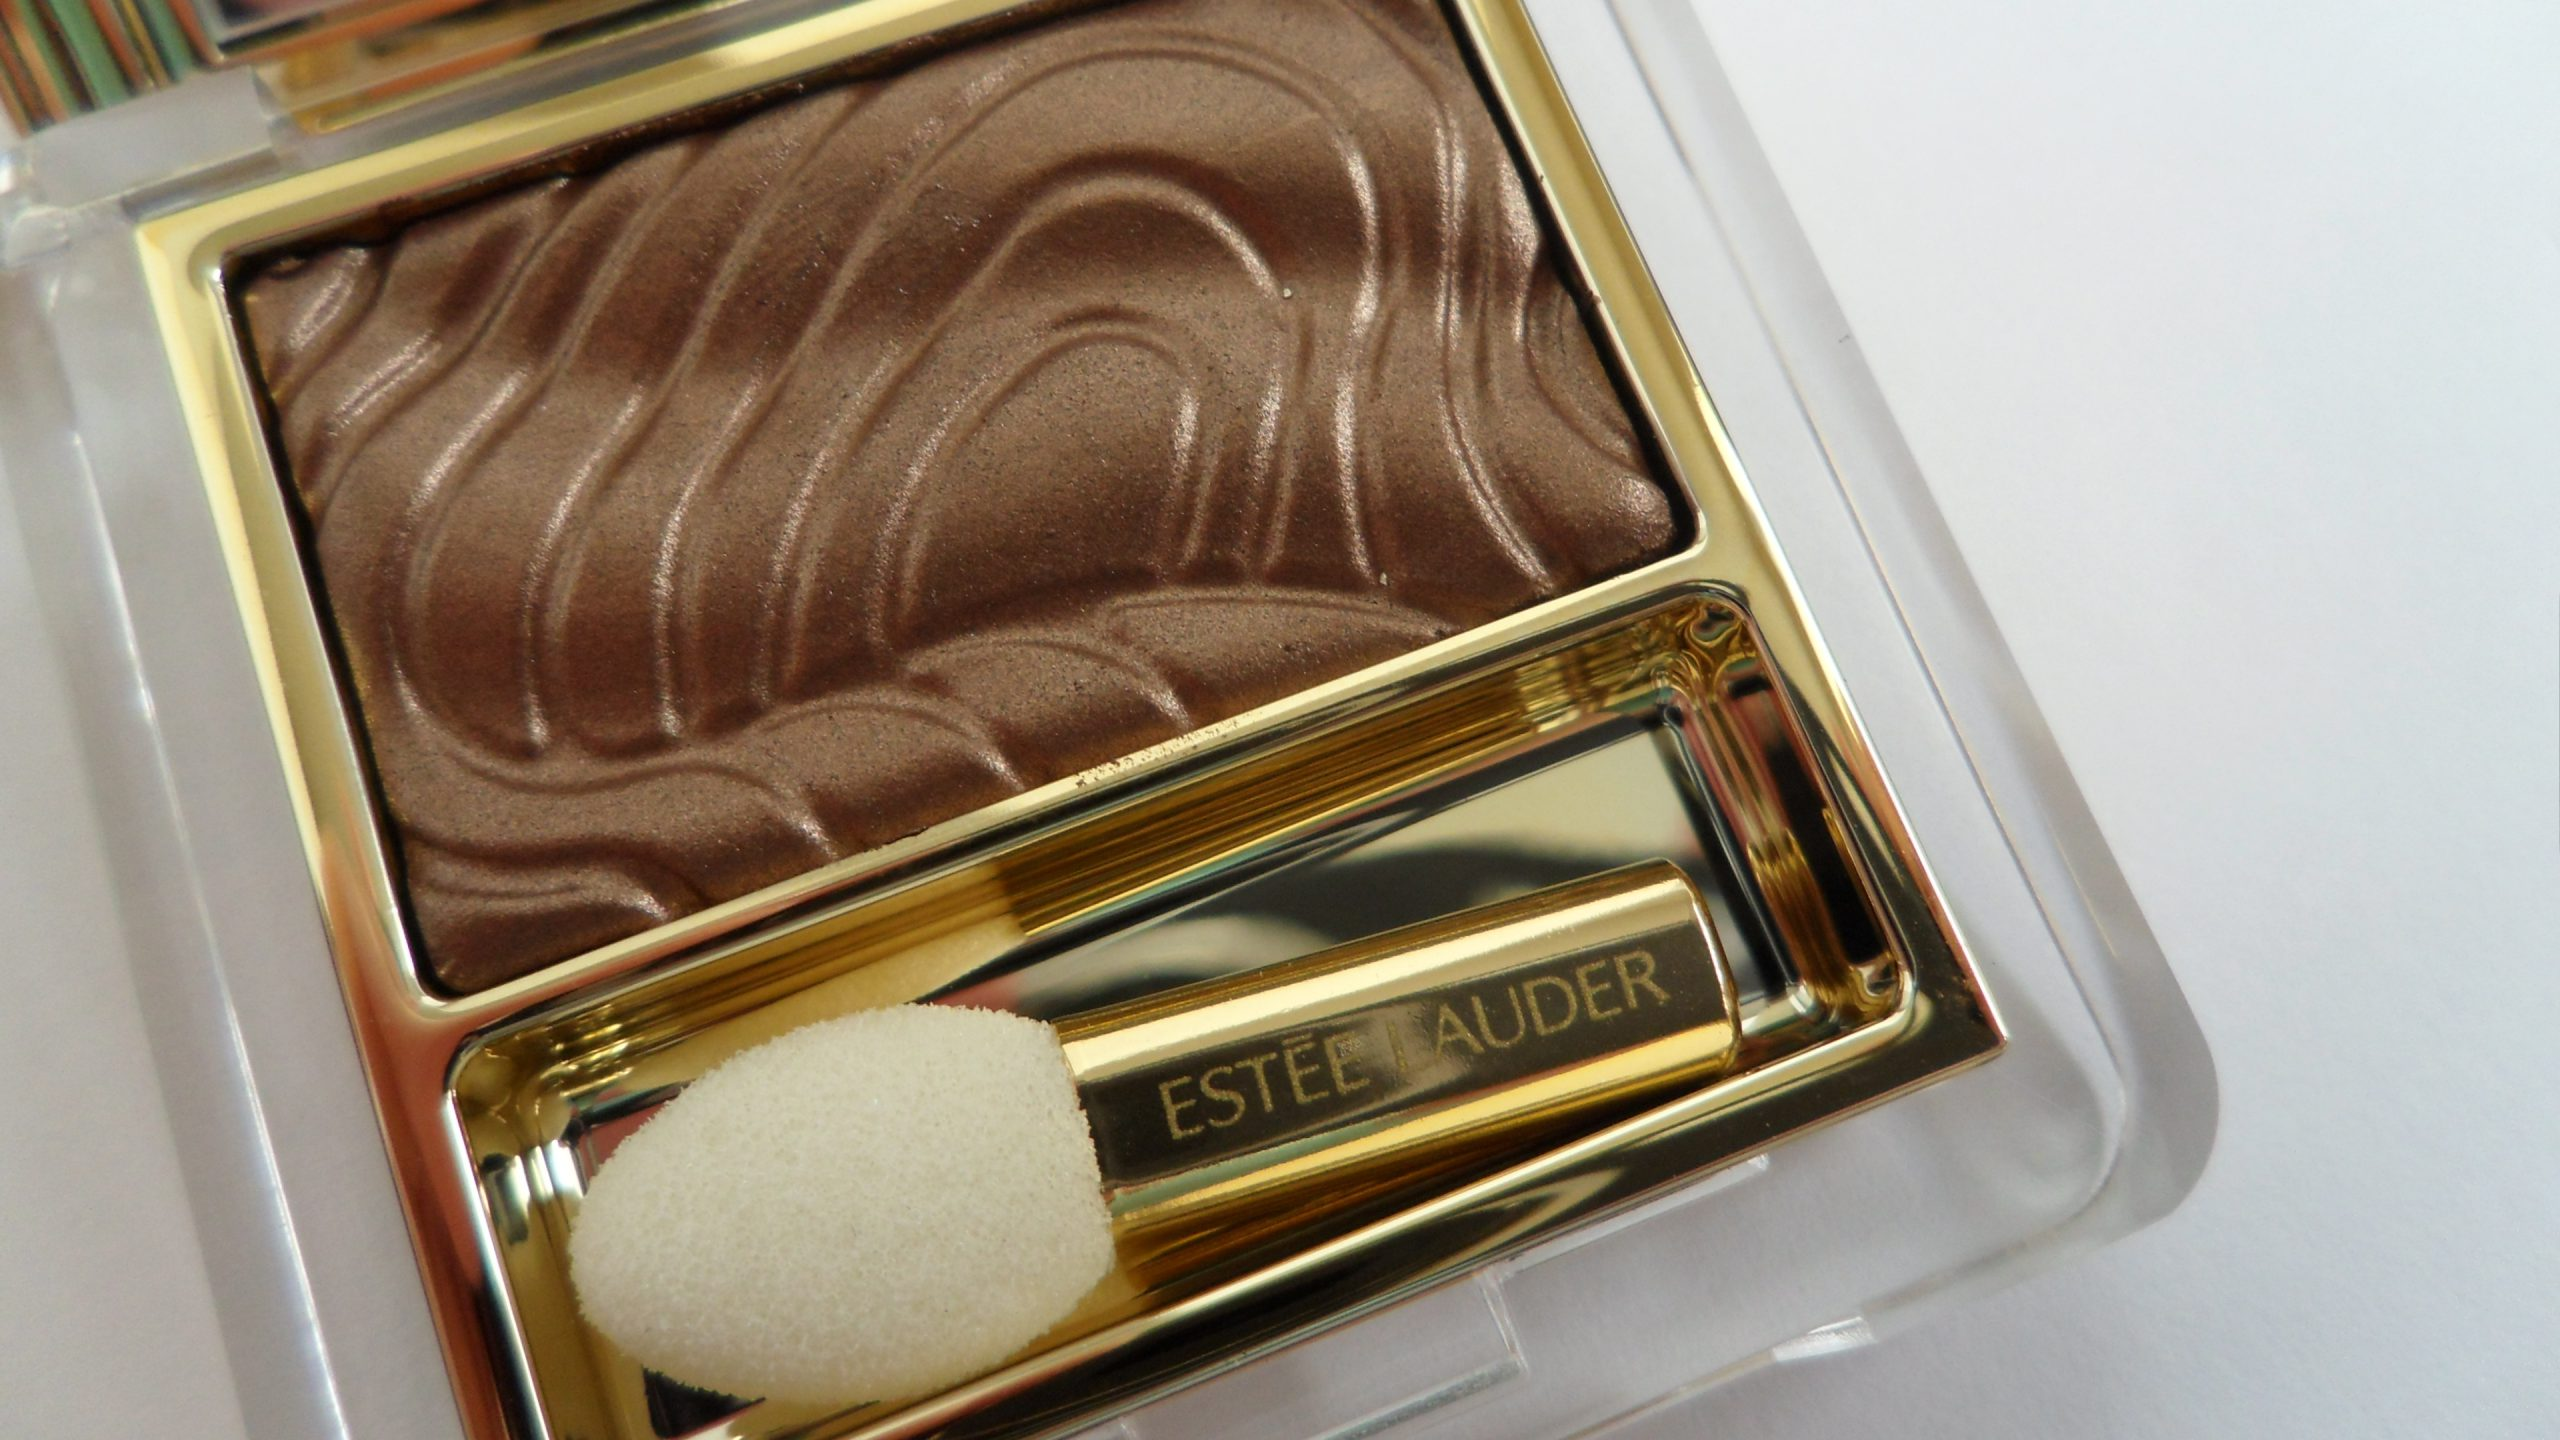 Machiaj metalic. Pure Color Gelée Powder EyeShadow de la Estee Lauder